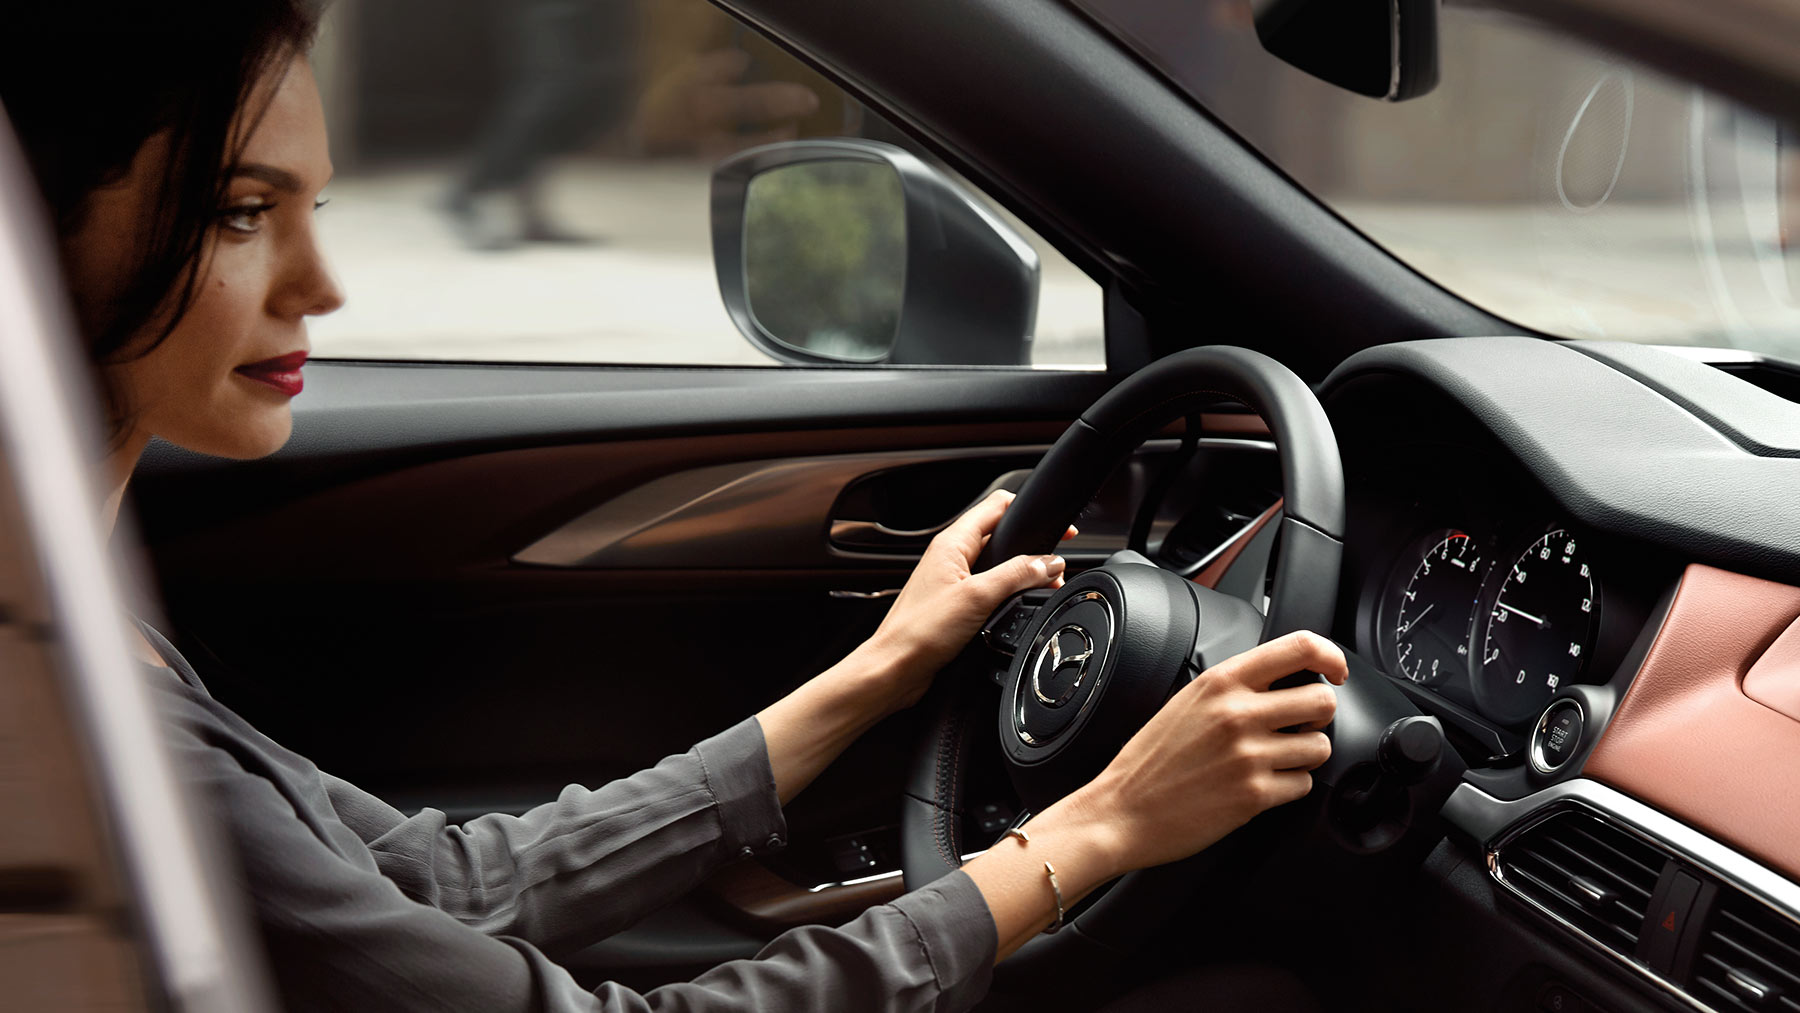 Enjoy the Journey in the 2019 Mazda CX-9